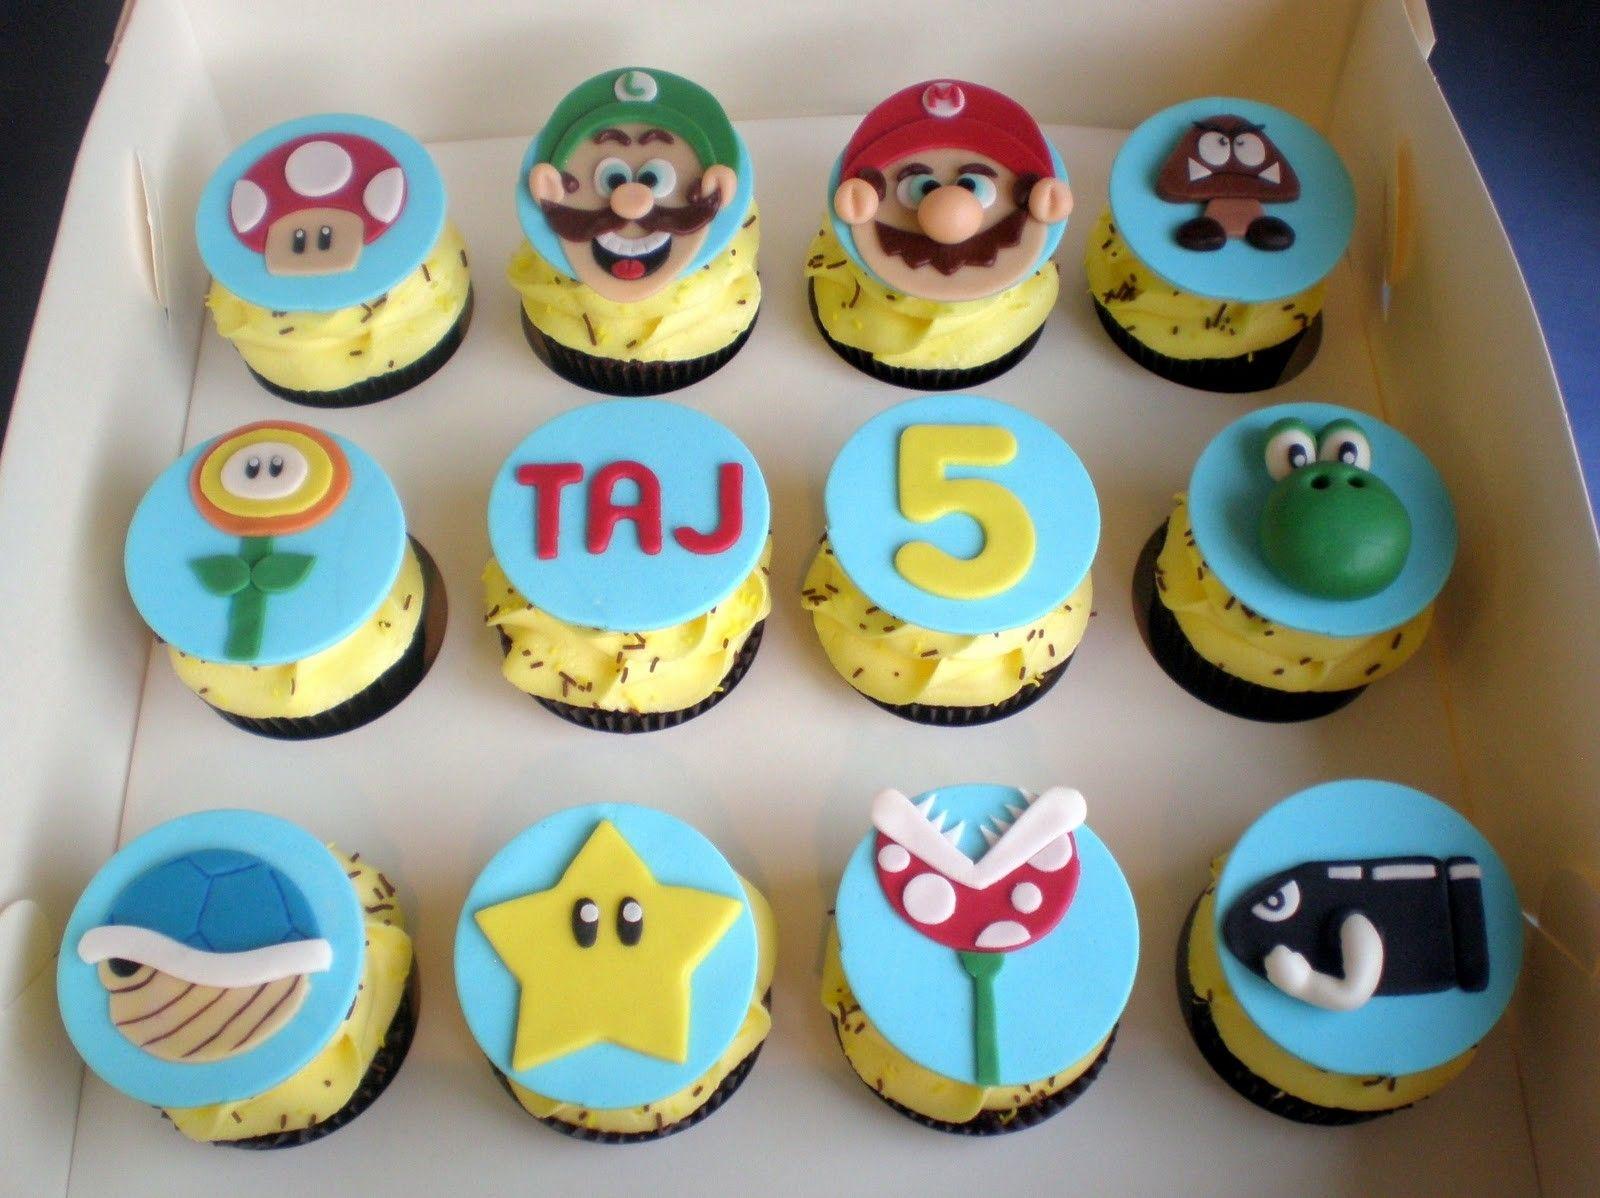 Mario Brothers Cake Easy Mario party Pinterest Mario brothers